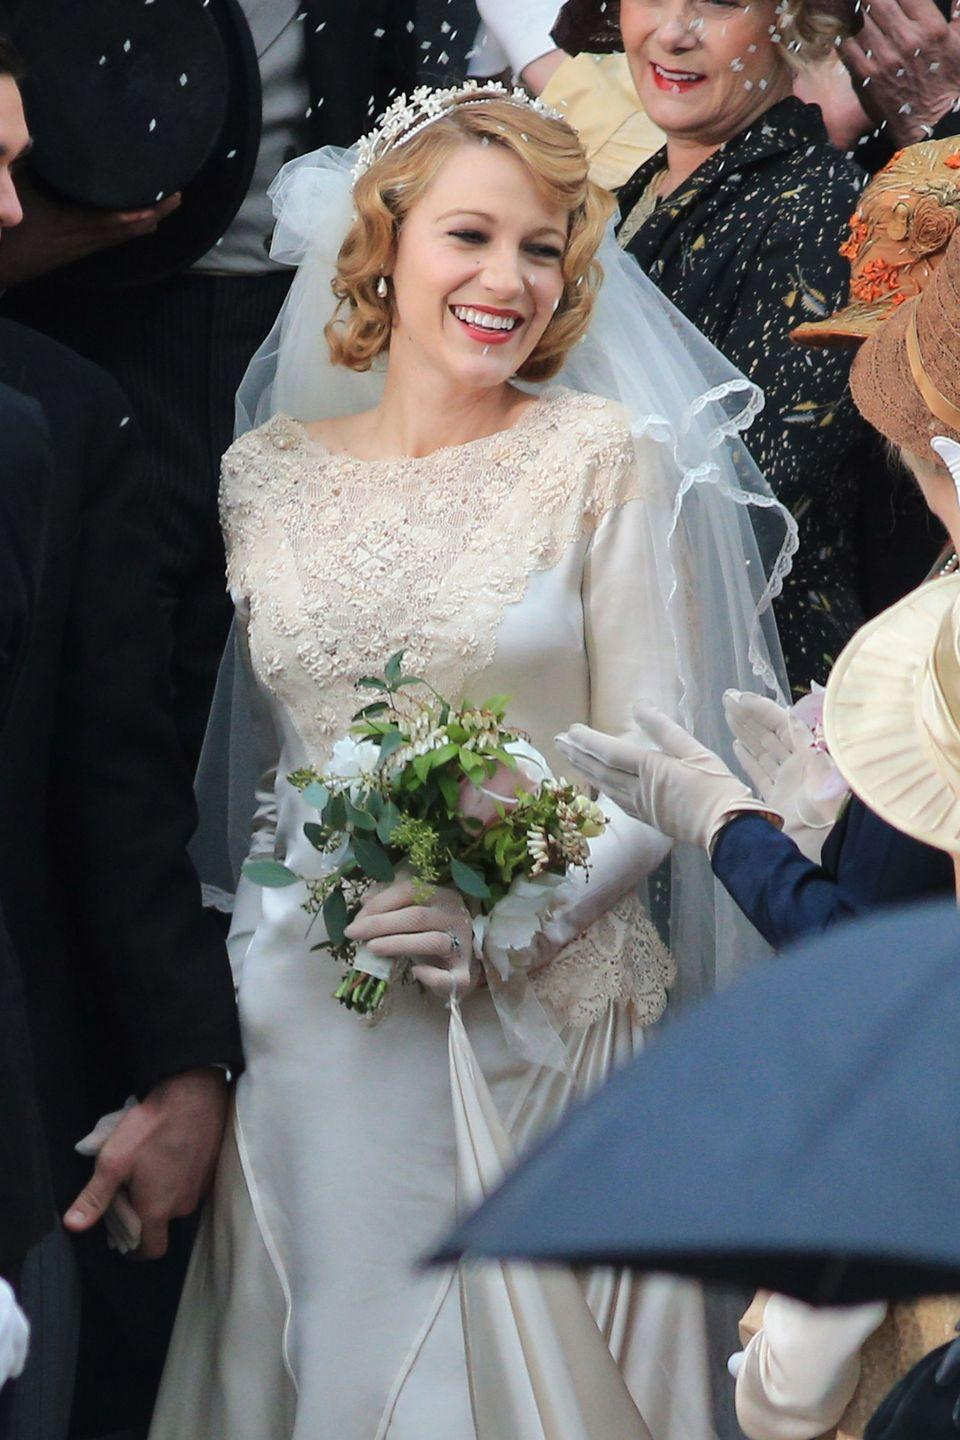 <p>Blake Lively slays in yet another breathtaking wedding dress in <em>The Age of Adaline</em>, this time with a vintage-y twist. </p>